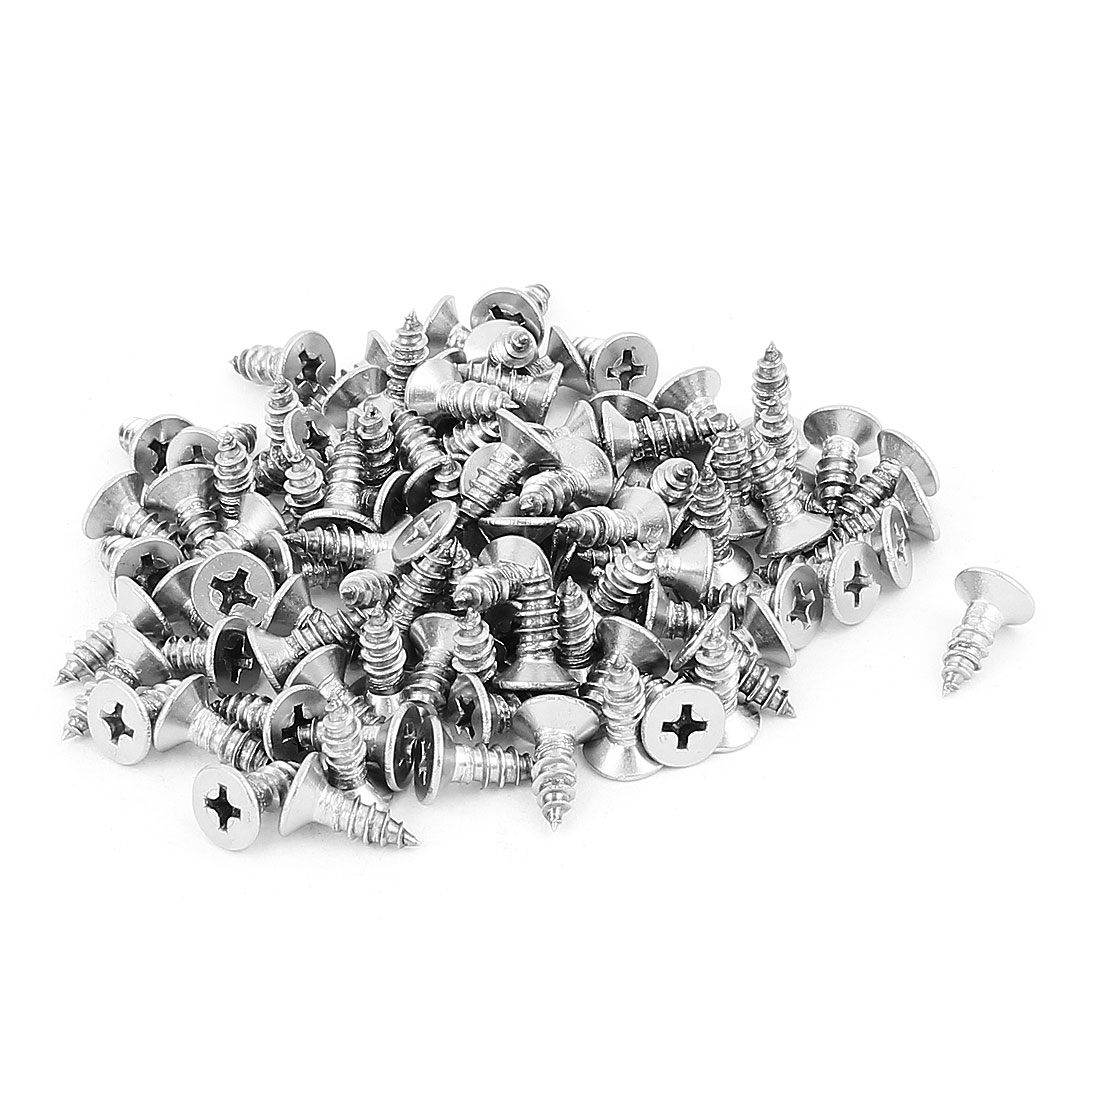 4.8mm x 13mm Flat Head Phillips Self Tapping Screw Fasteners Silver Tone 100 Pcs